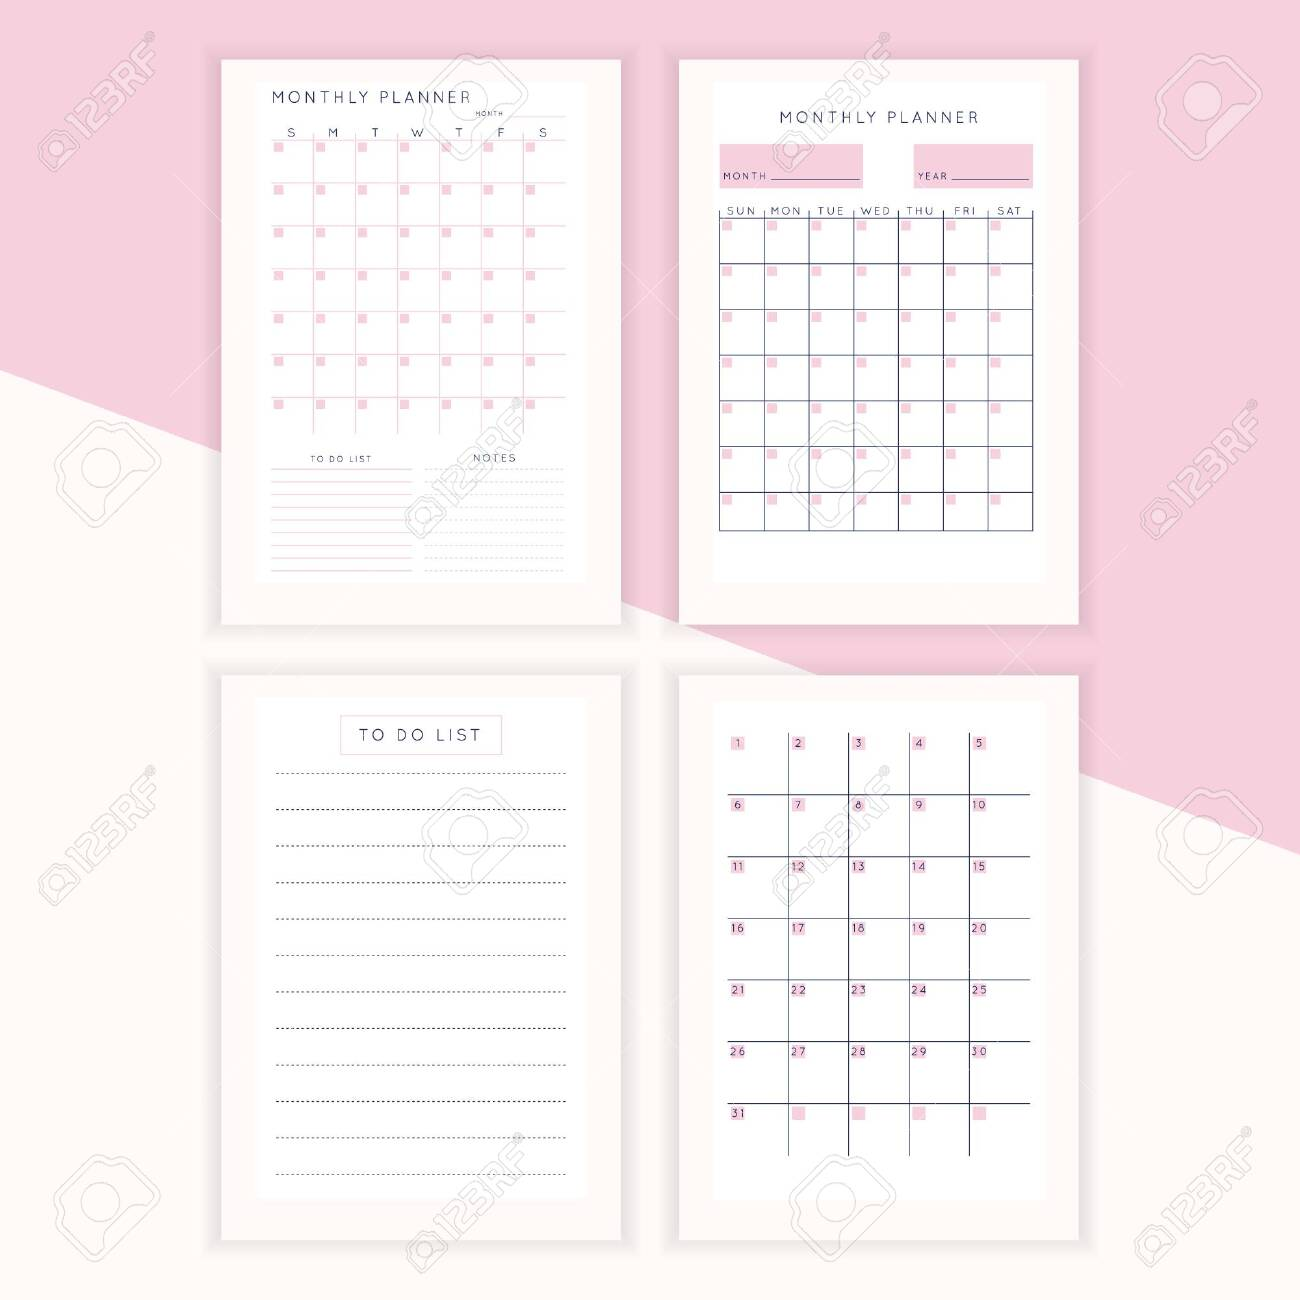 Set Of Minimalist Abstract Planners Daily Weekly Monthly Planner Royalty Free Cliparts Vectors And Stock Illustration Image 136811022